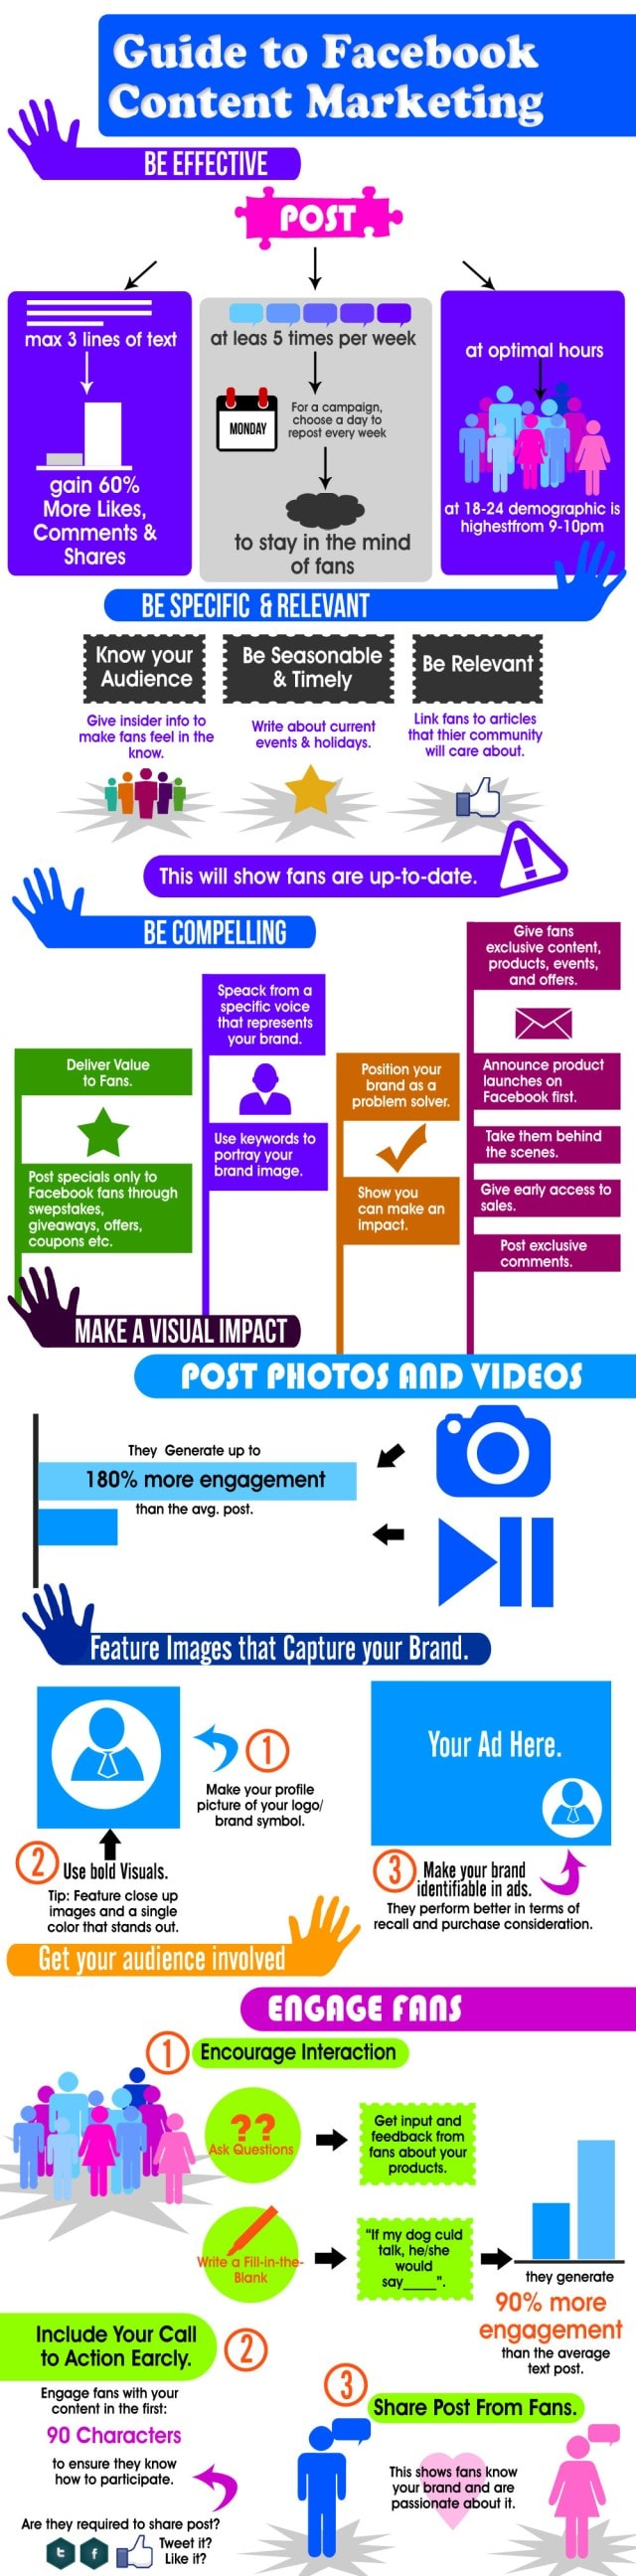 infografia_marketing_contenidos_facebook